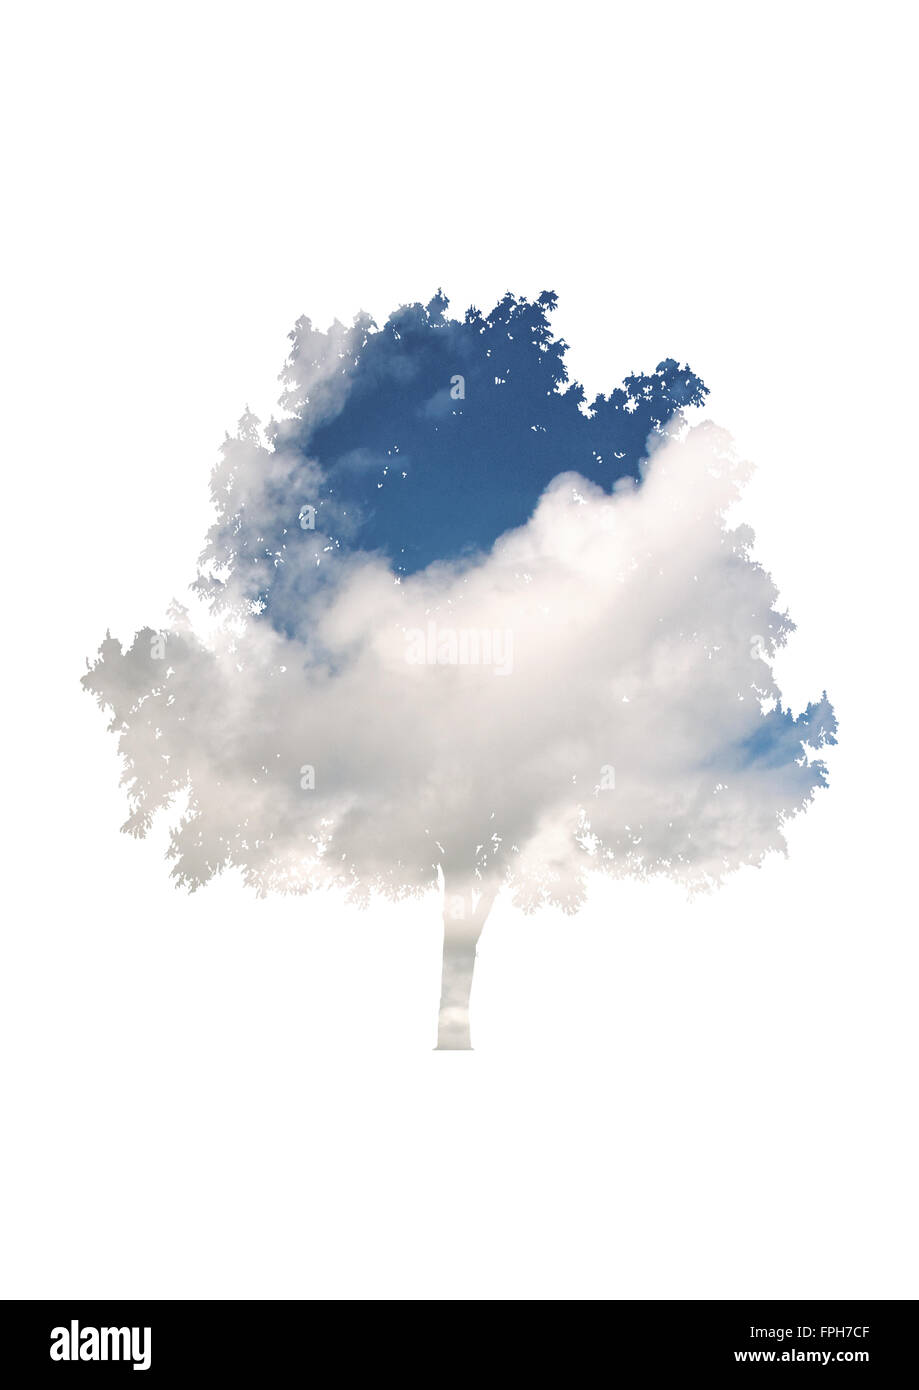 Artistic nature and weather blue sky and cloud overlay on the silhouetted shape of a leafy tree isolated on white - Stock Image